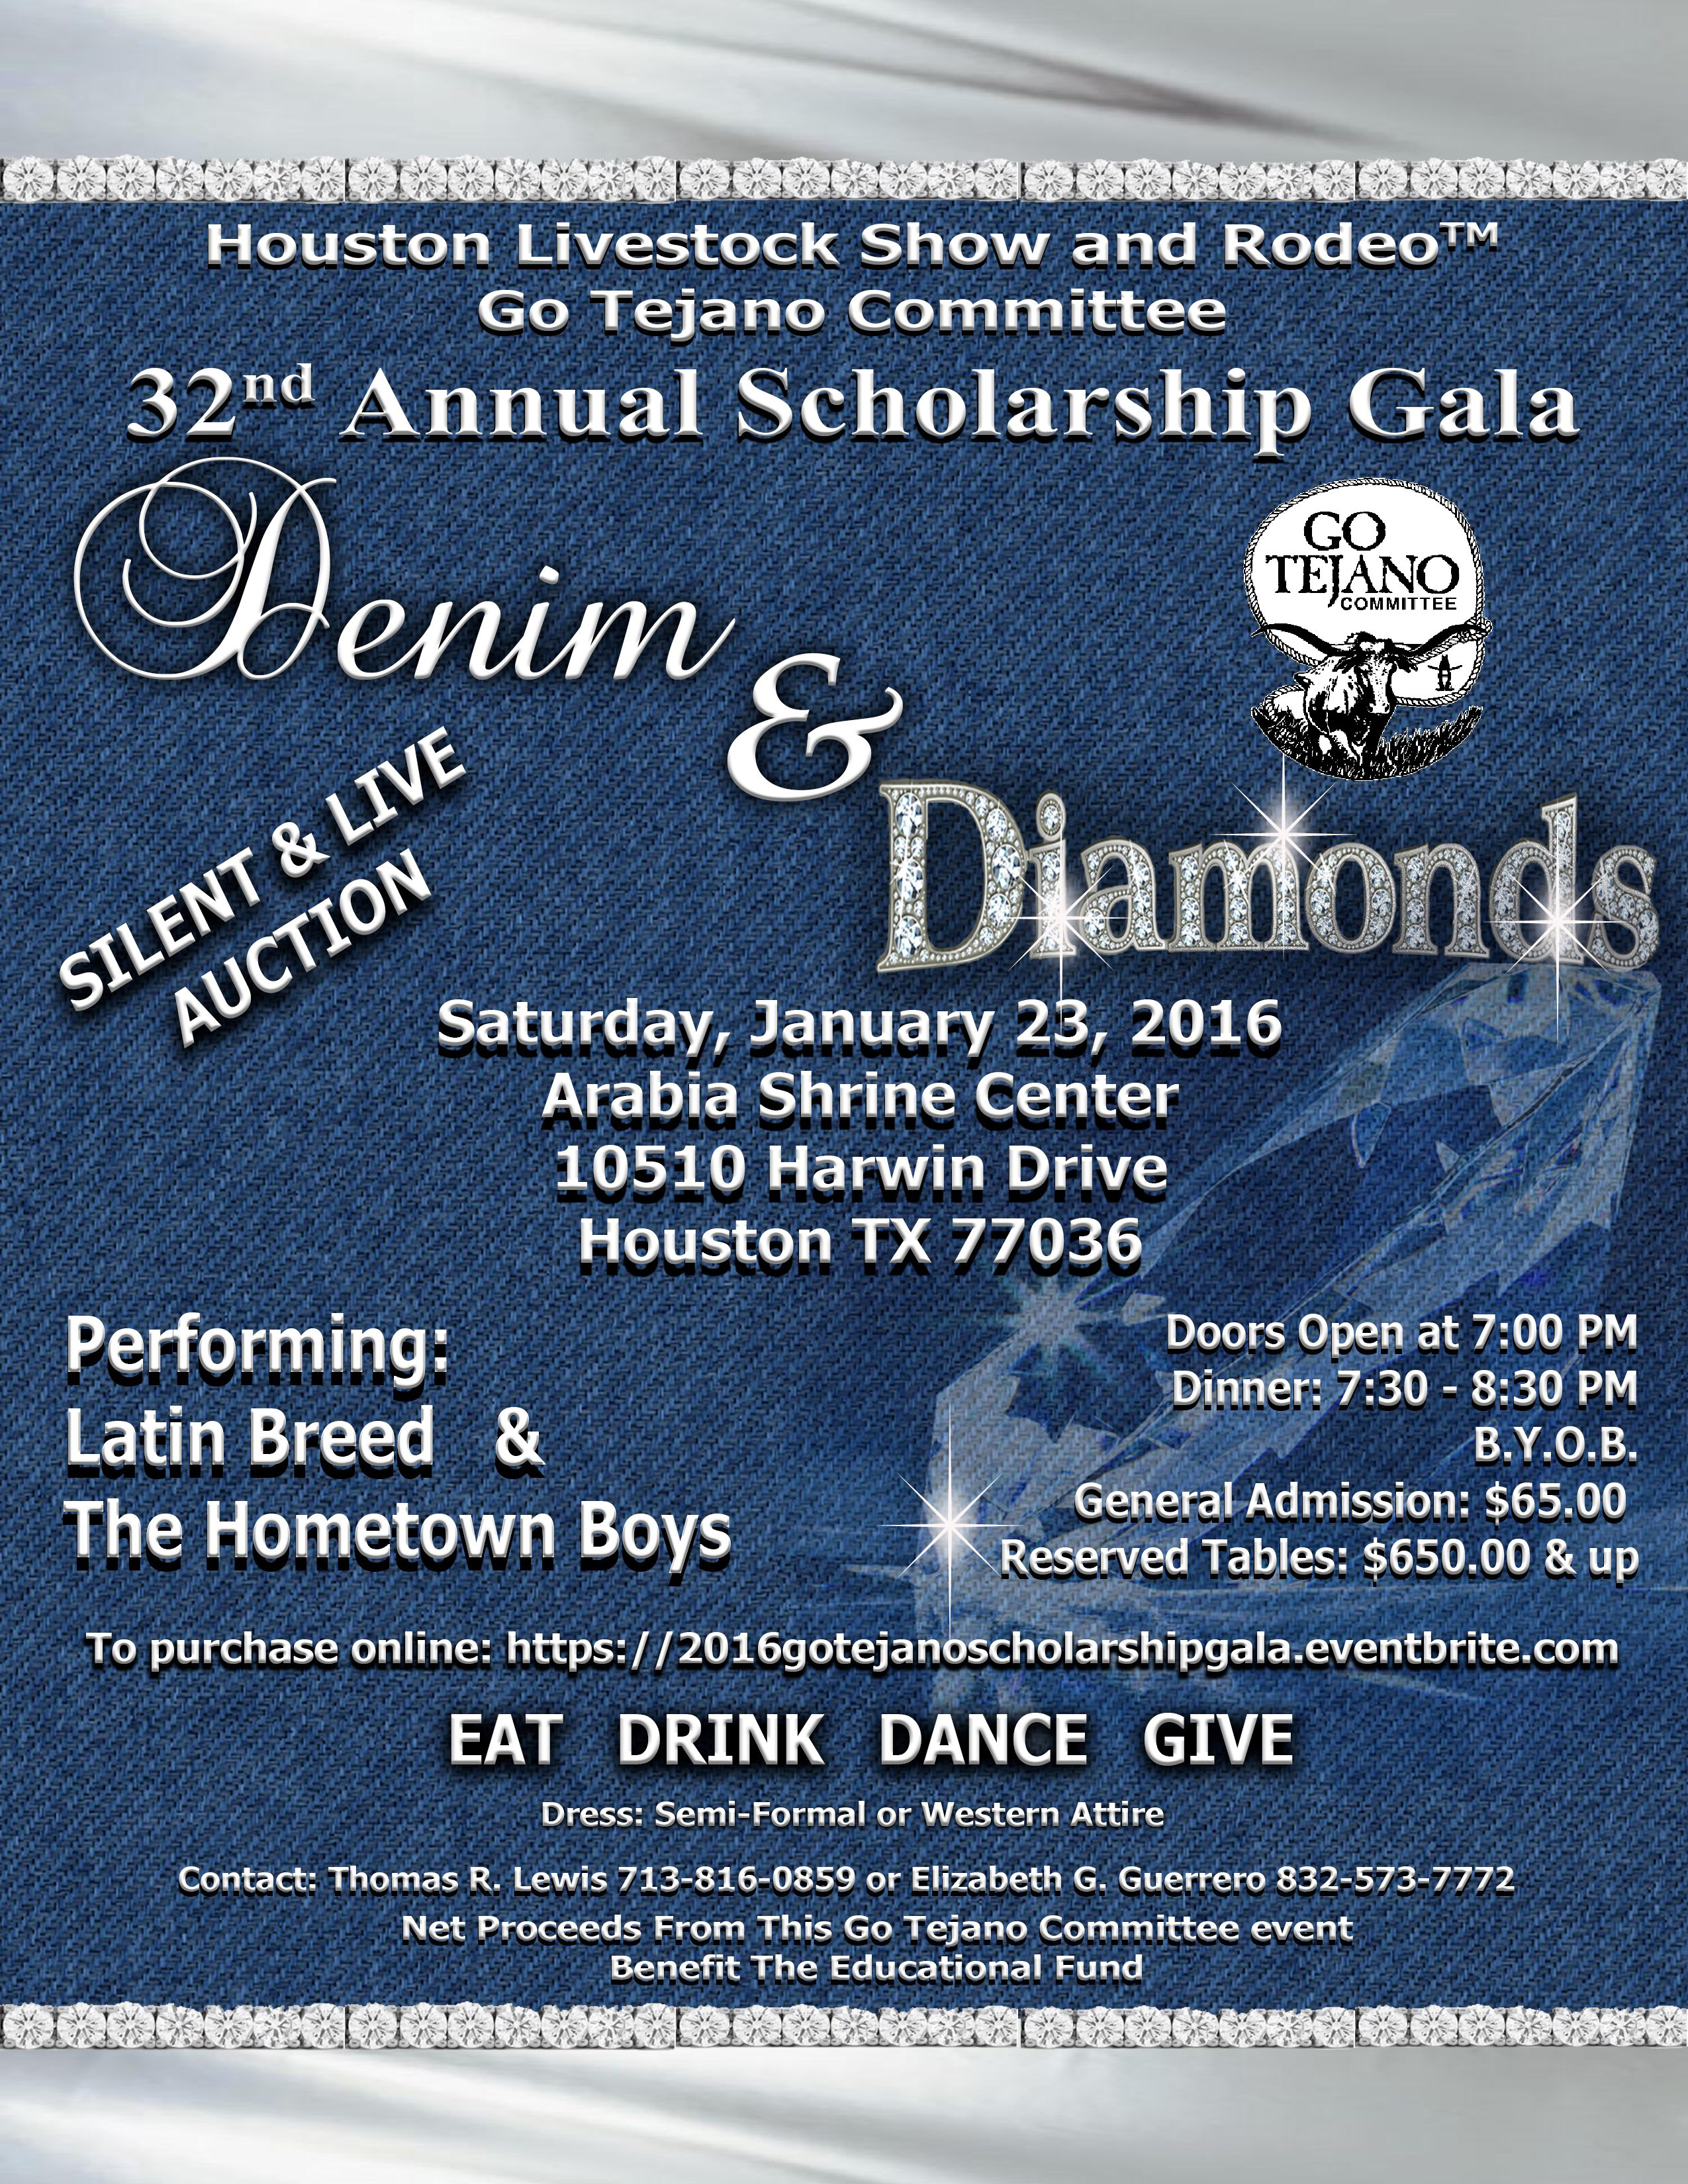 Go Tejano Committee 32nd Annual Scholarship Gala on Saturday, January 23, 2016